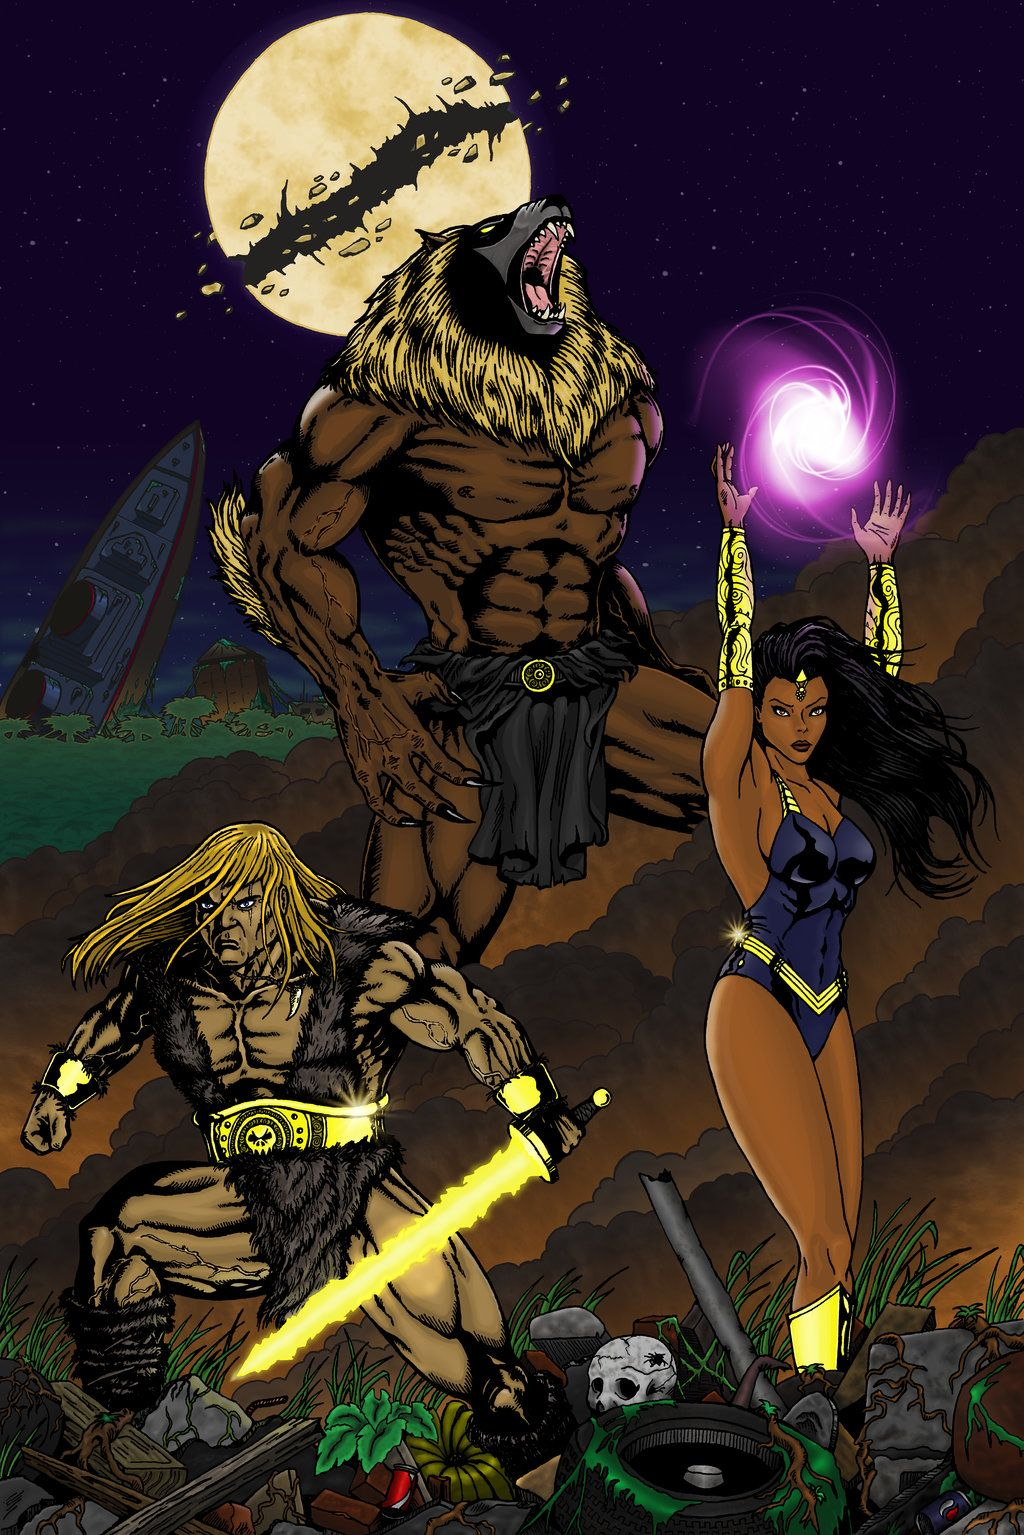 Epic Thundarr the Barbarian by colonel-red.deviantart.com on @DeviantArt